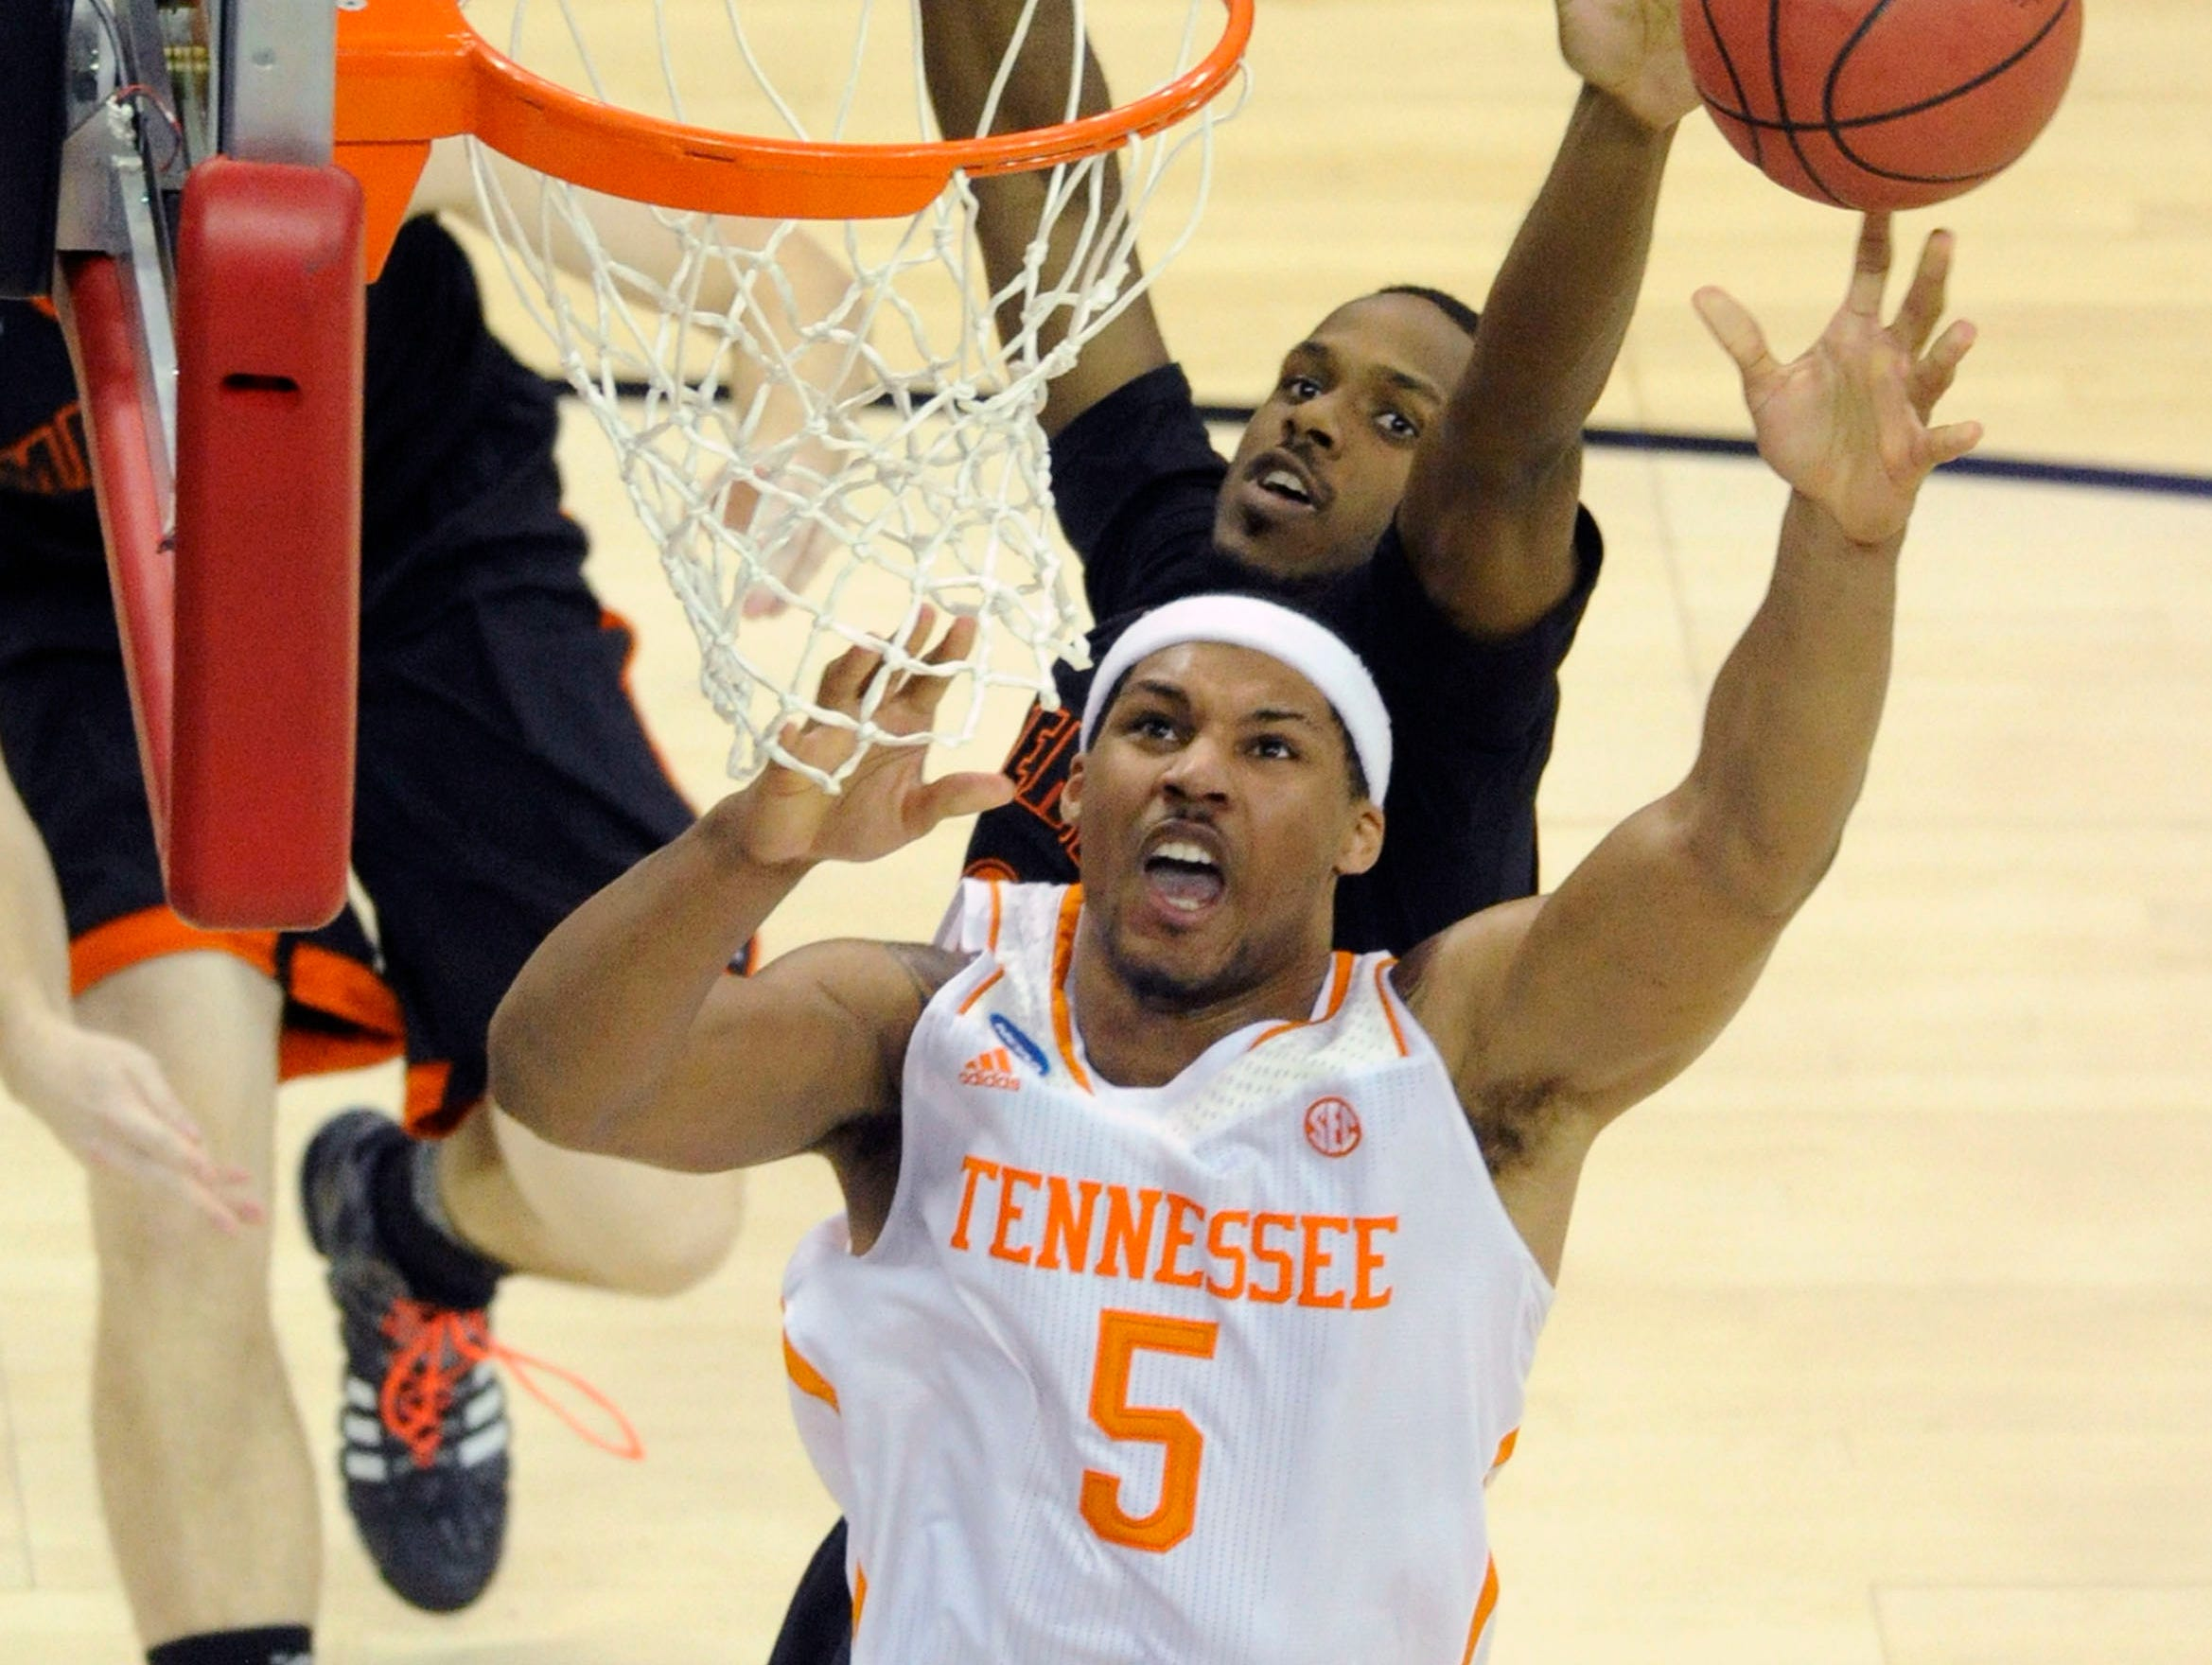 Tennessee forward Jarnell Stokes (5) shoots a layup against Mercer during the second half of a third-round NCAA tournament game at the PNC Arena in Raleigh, N.C. on Sunday, March 23, 2014. Tennessee won 83-63.